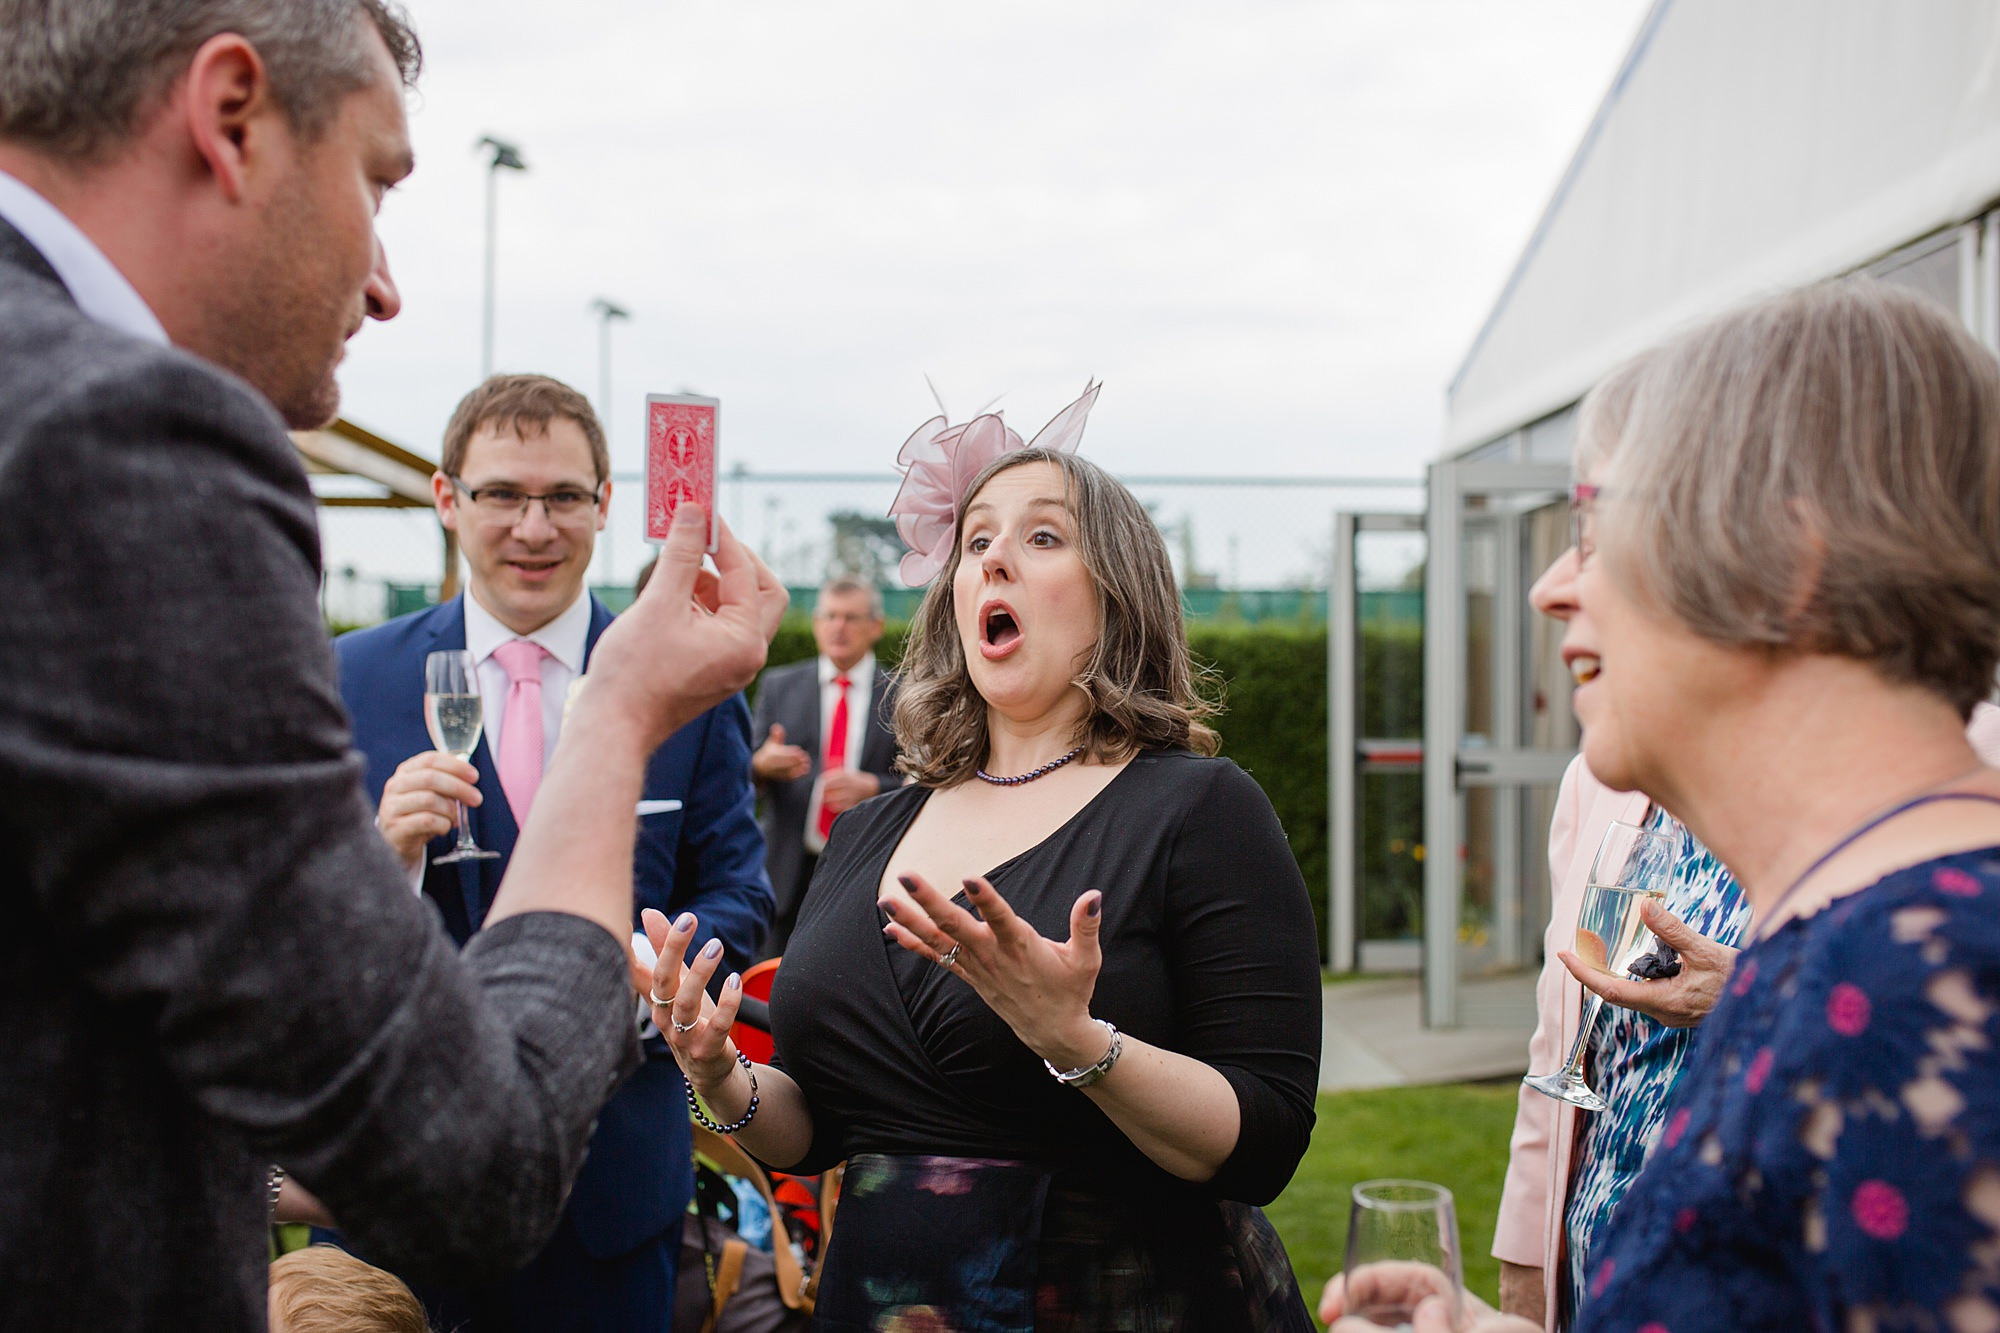 Bank of England Sports Centre wedding guest funny surprised reaction at magic trick